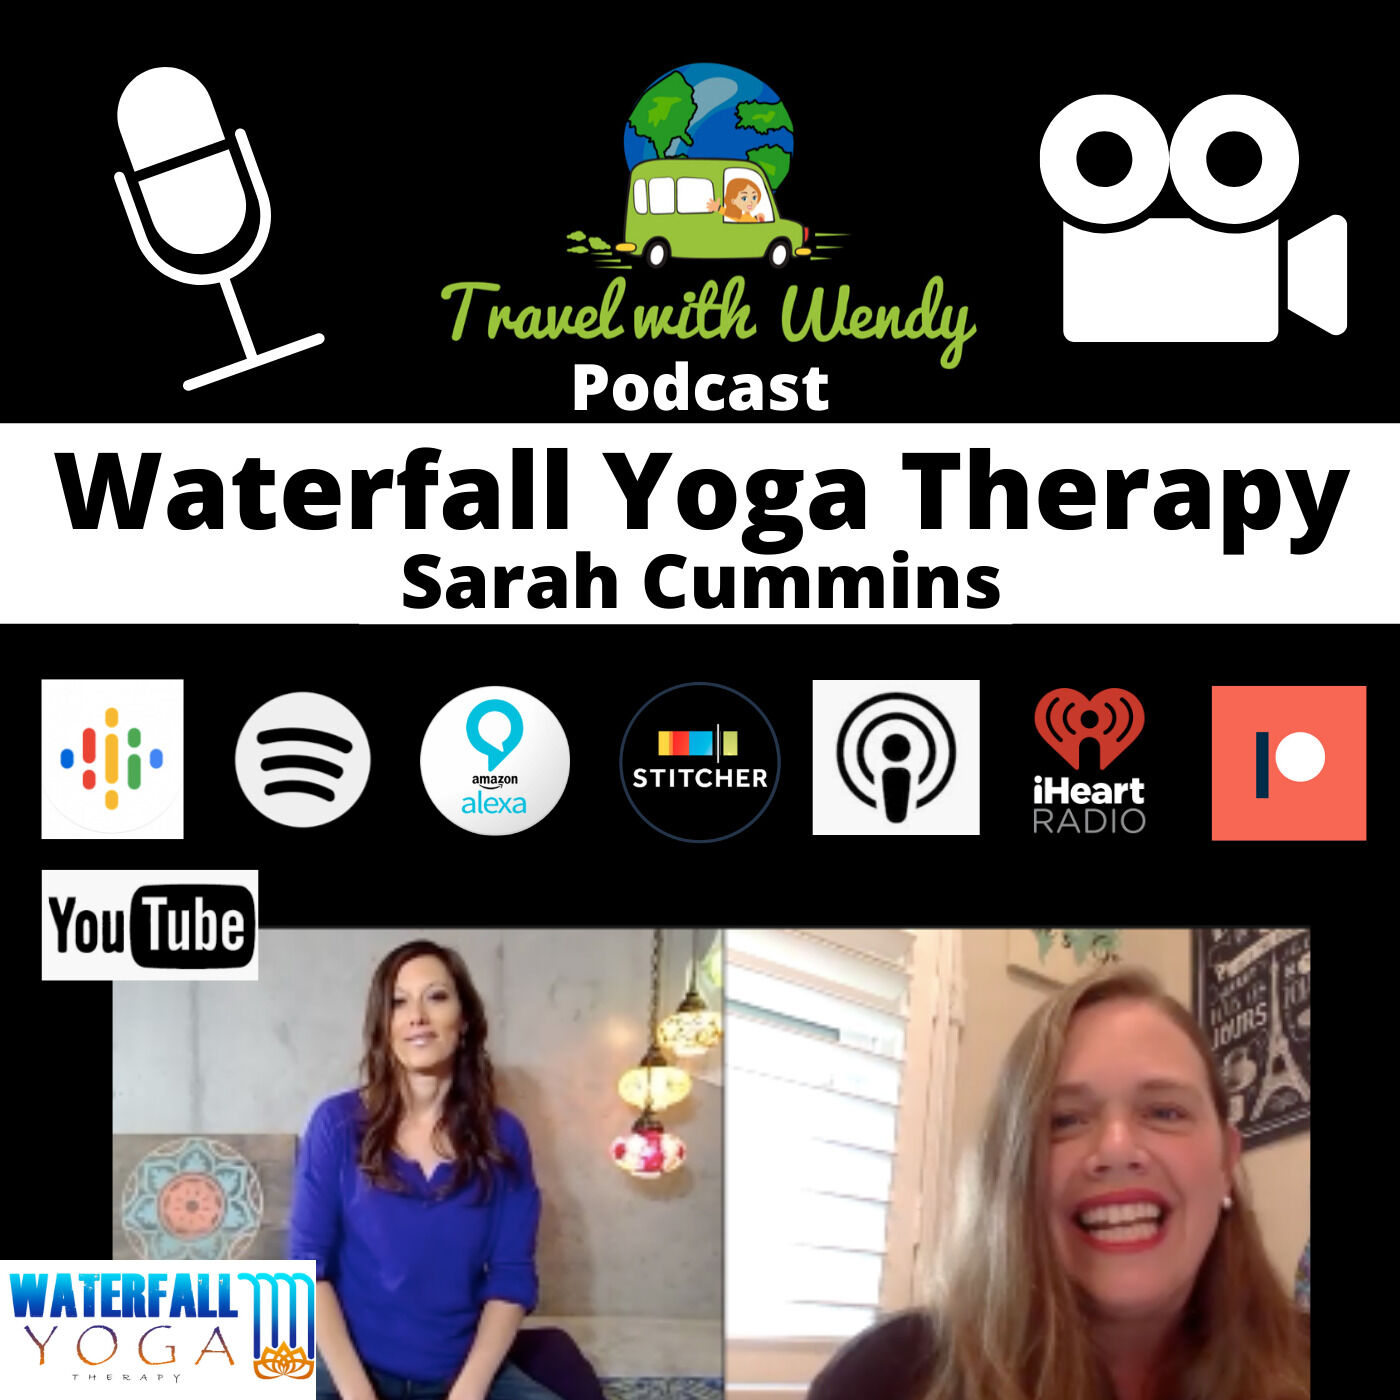 #15 Waterfall Yoga, LLC - Sarah Cummins